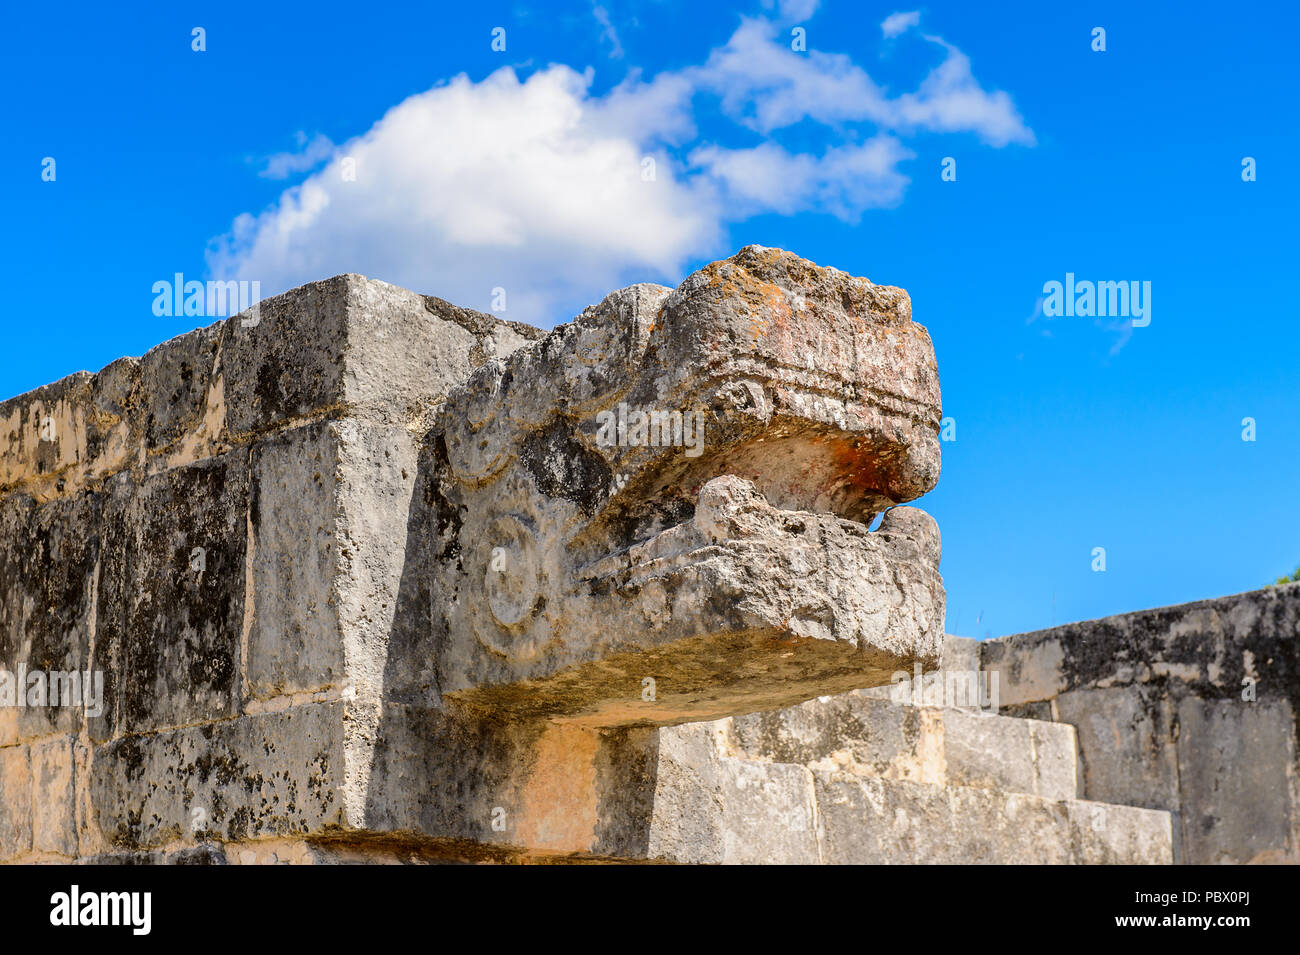 Plumed Serpent, Venus Platform, Chichen Itza, Tinum Municipality, Yucatan State. It was a large pre-Columbian city built by the Maya people of the Ter Stock Photo